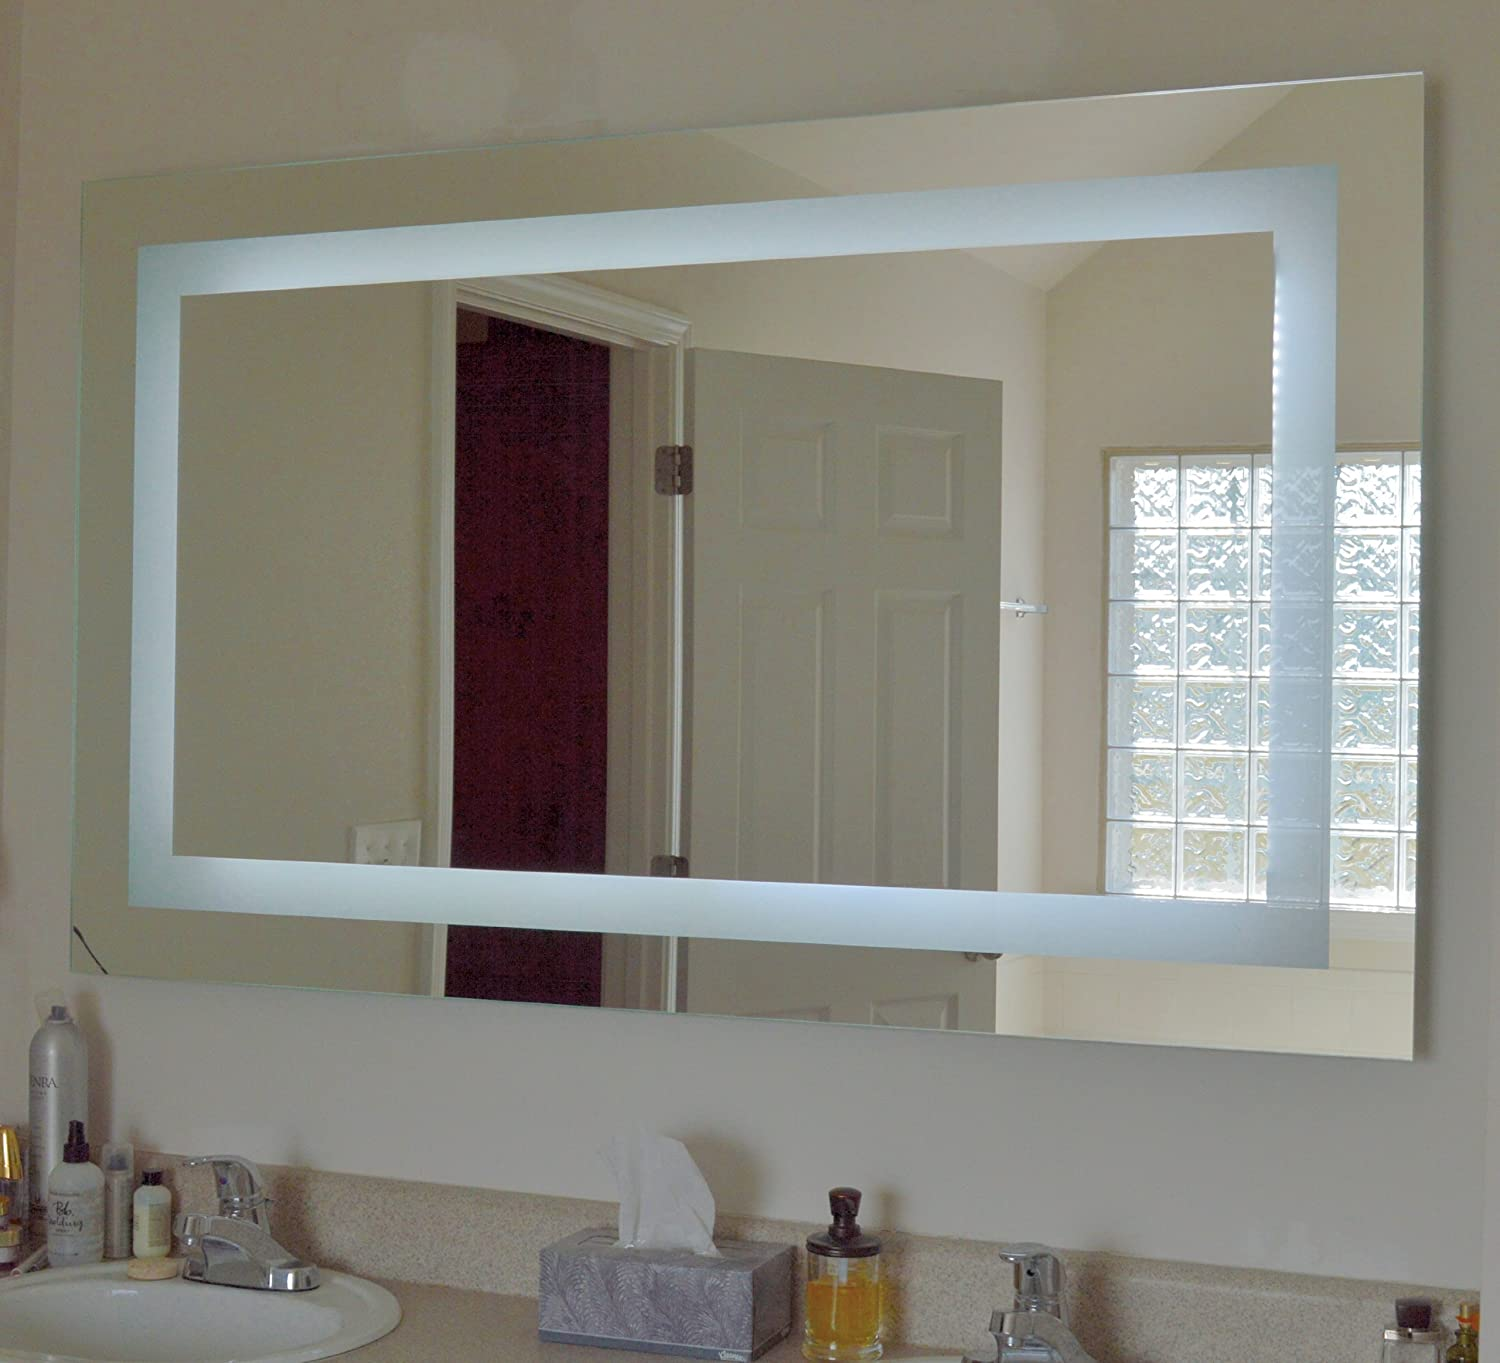 Backlit mirrors for bathrooms u s a together with boffis thirteen to - Amazon Com Lighted Vanity Mirror Led Mam86036 Commercial Grade 60 Wide X 36 Tall Home Kitchen